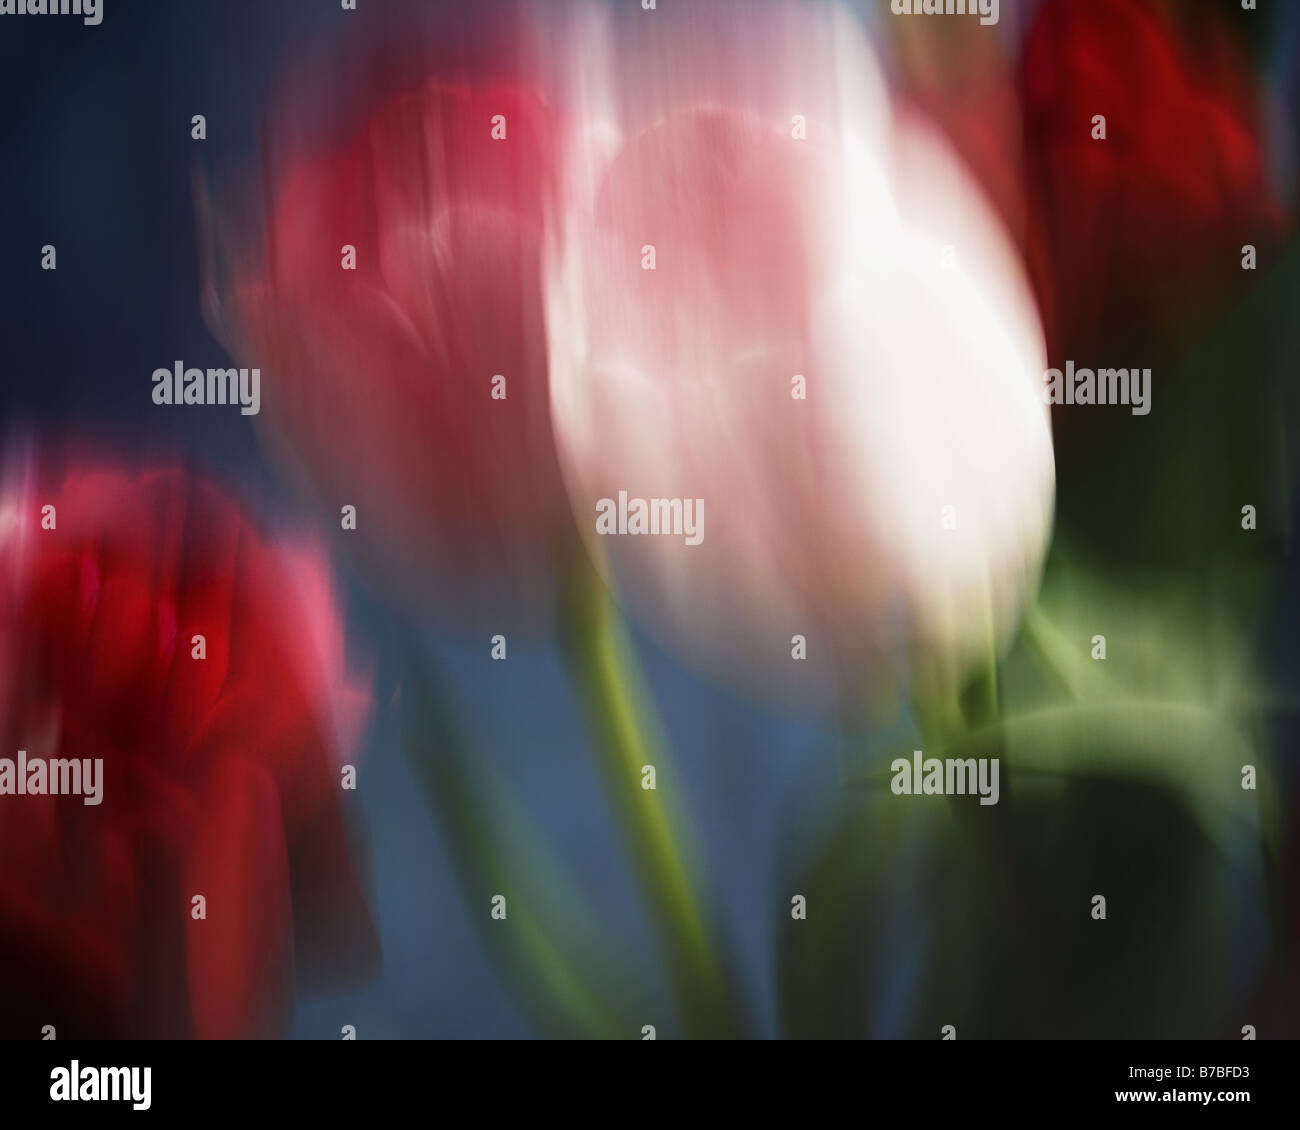 FINE ART: Tulip Arrangement (Photo Art) - Stock Image